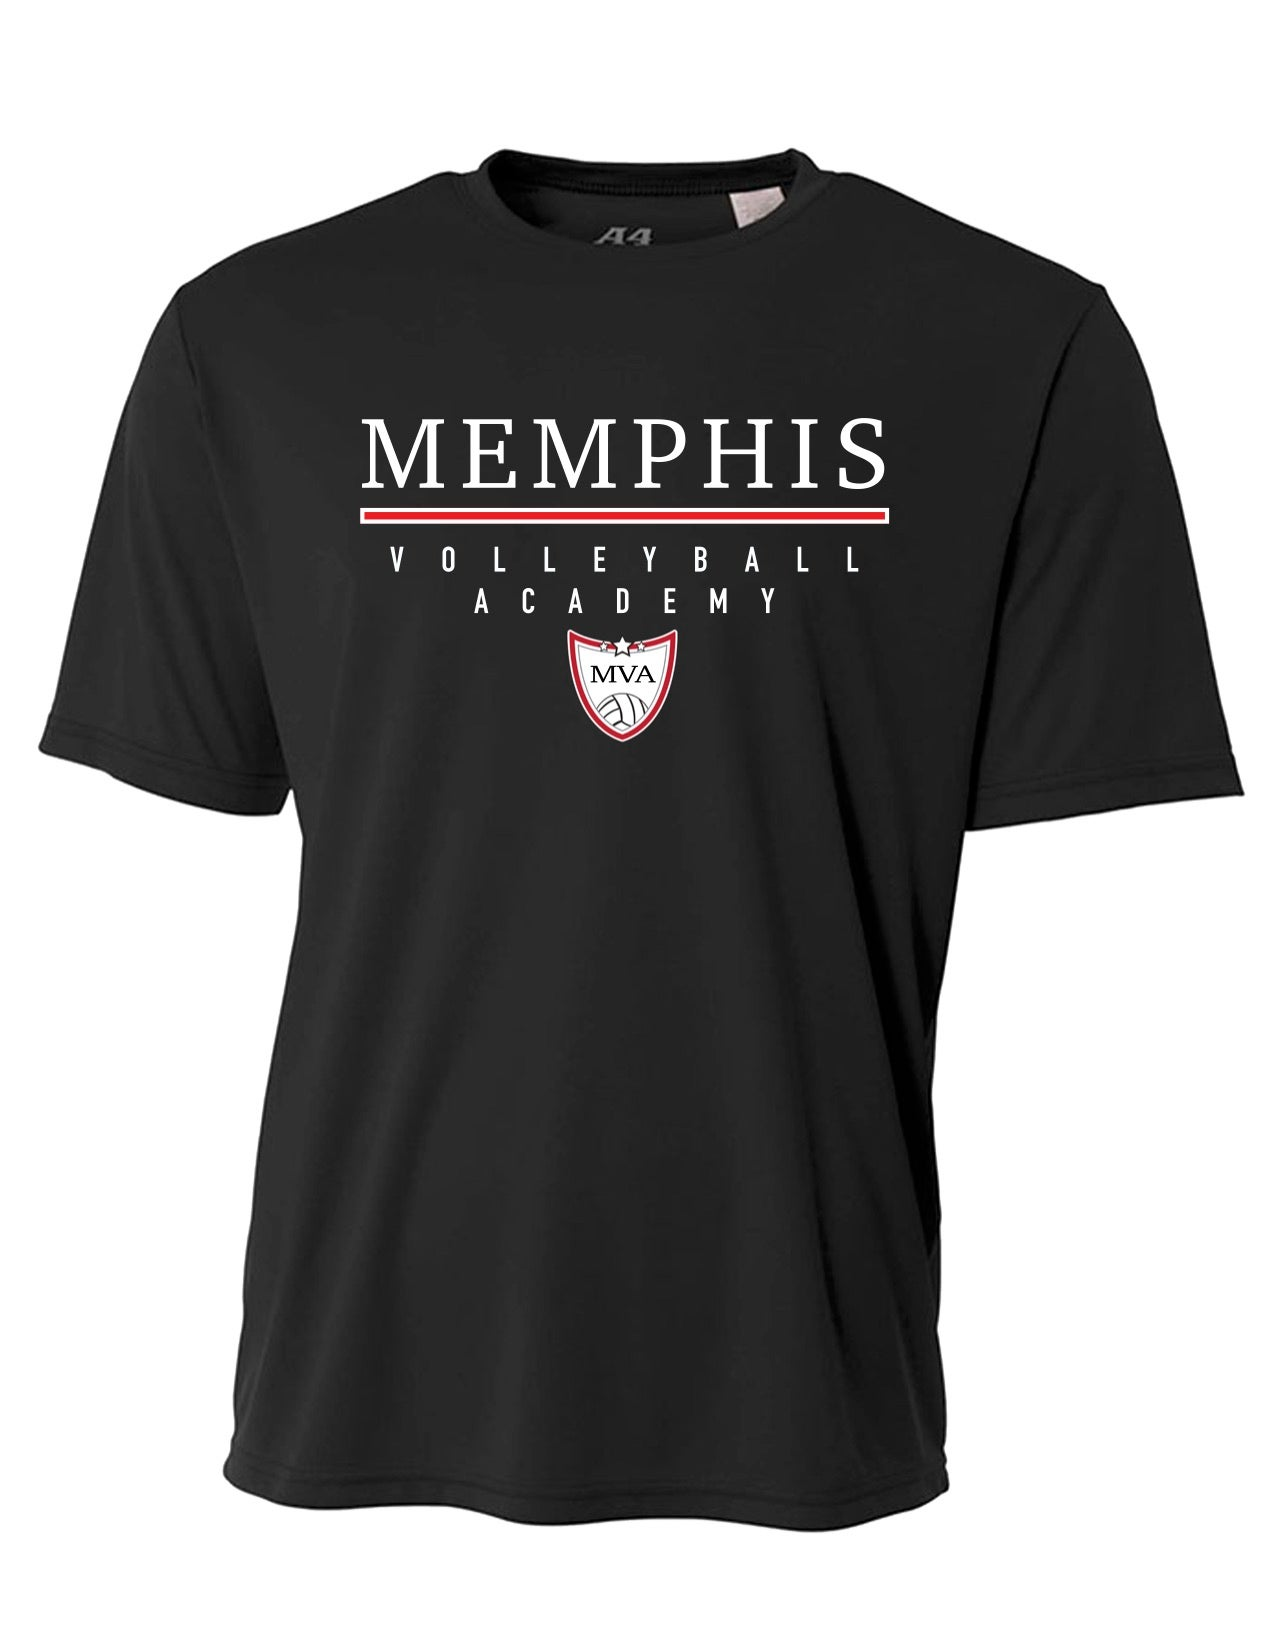 Image of Memphis Volleyball Academy Performance Tee - (Multiple Color Options)